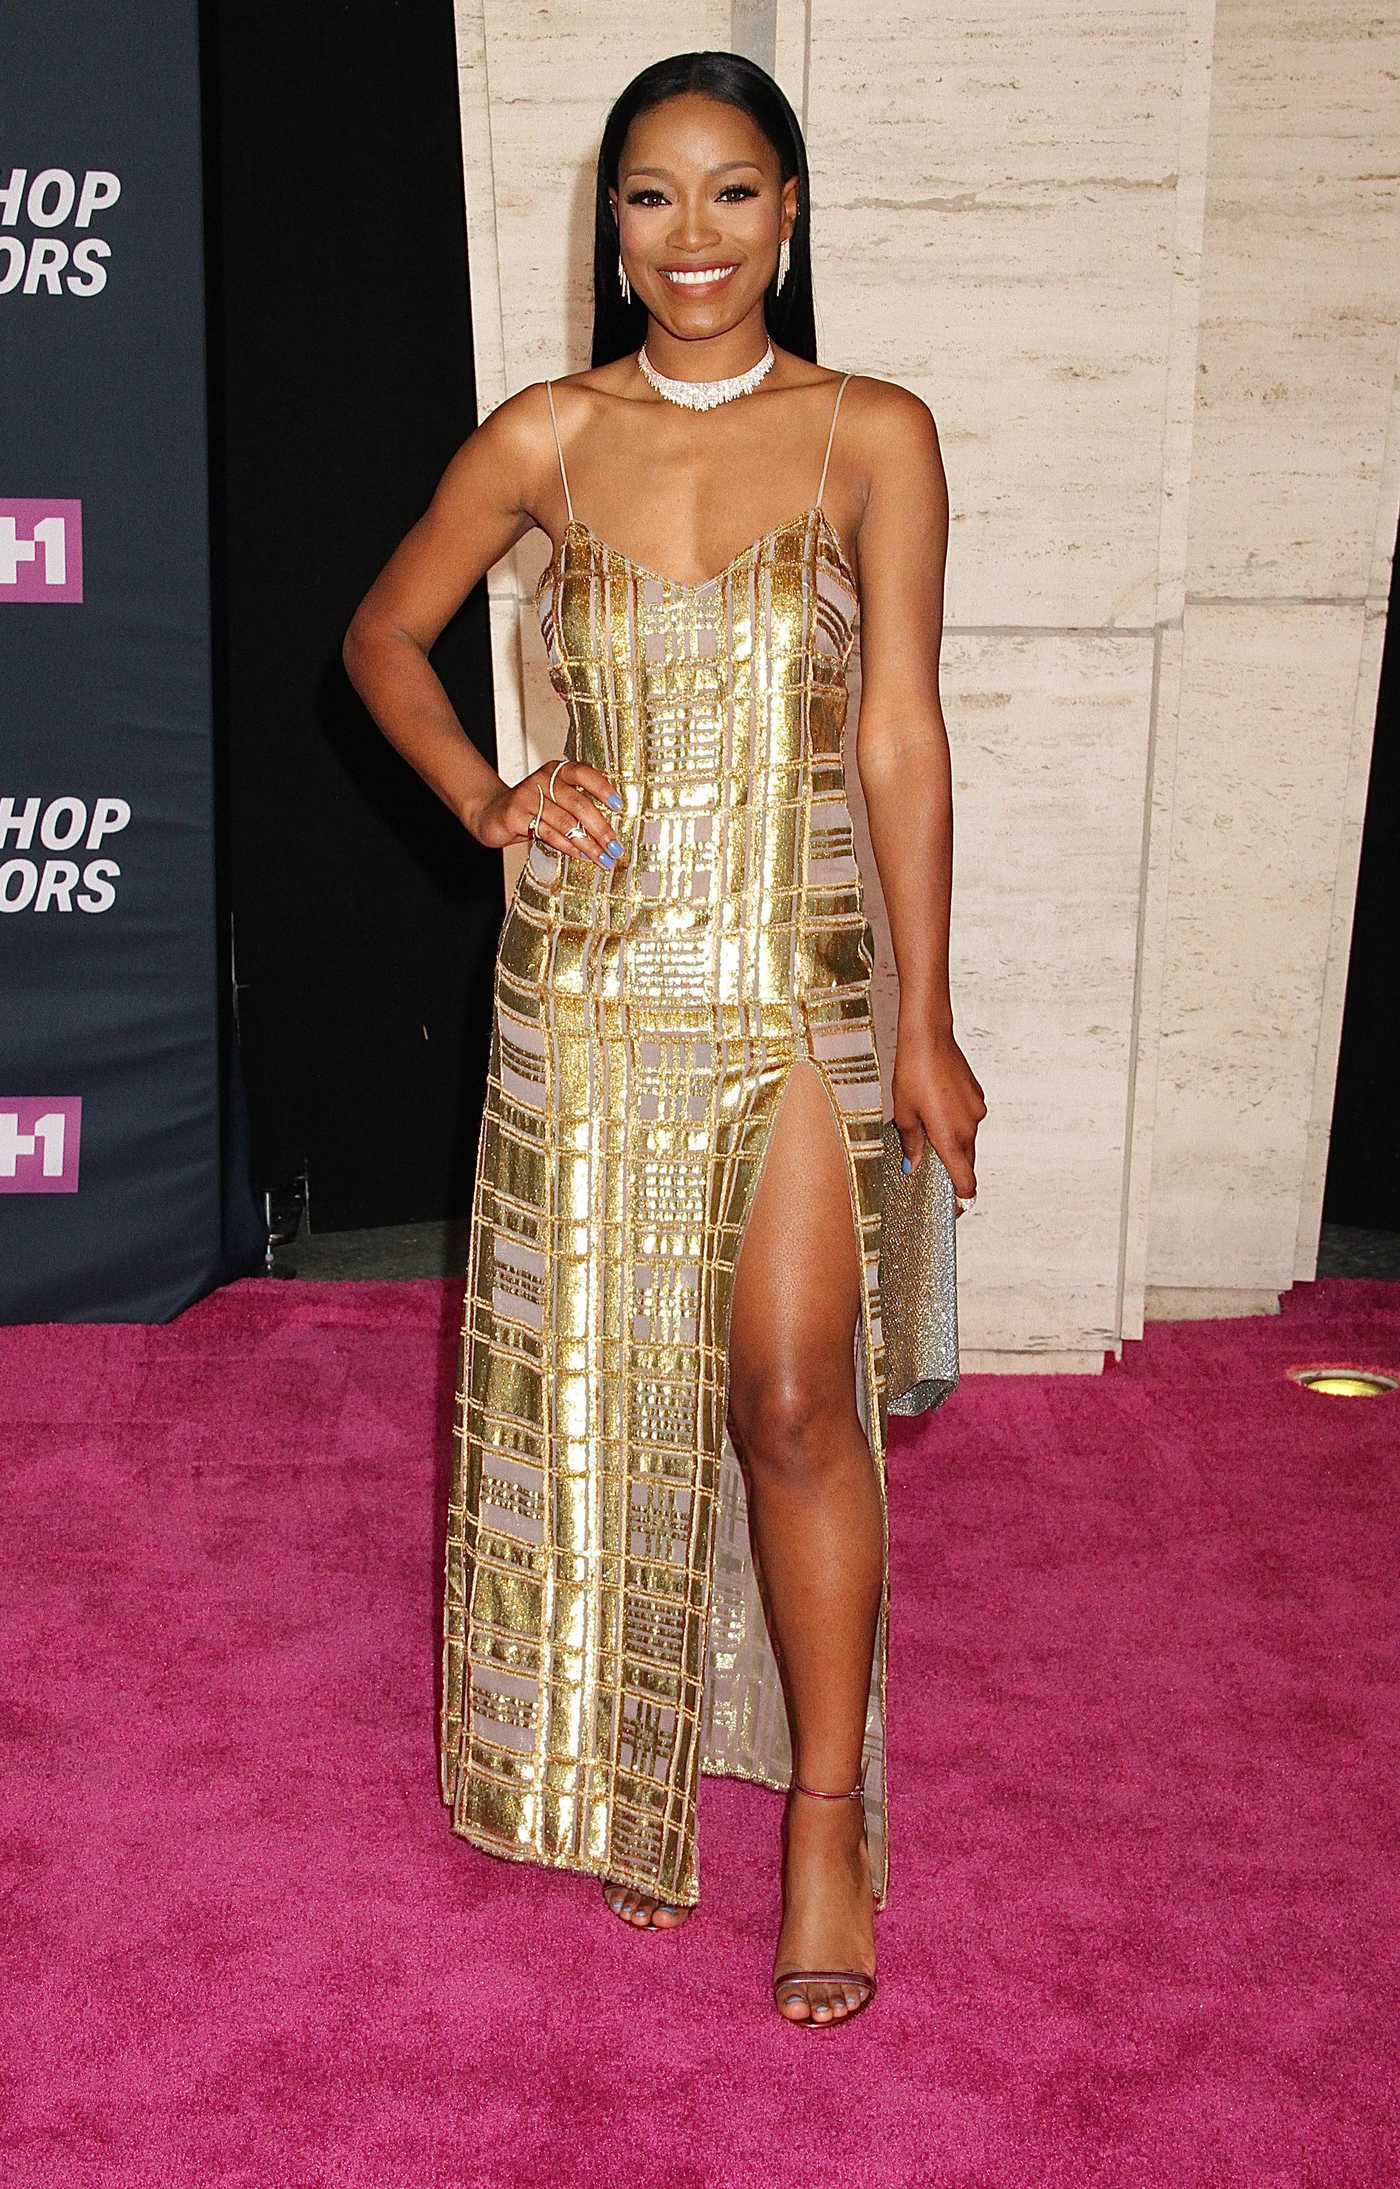 Keke Palmer at the VH1 Hip Hop Honors in New York City 07/11/2016